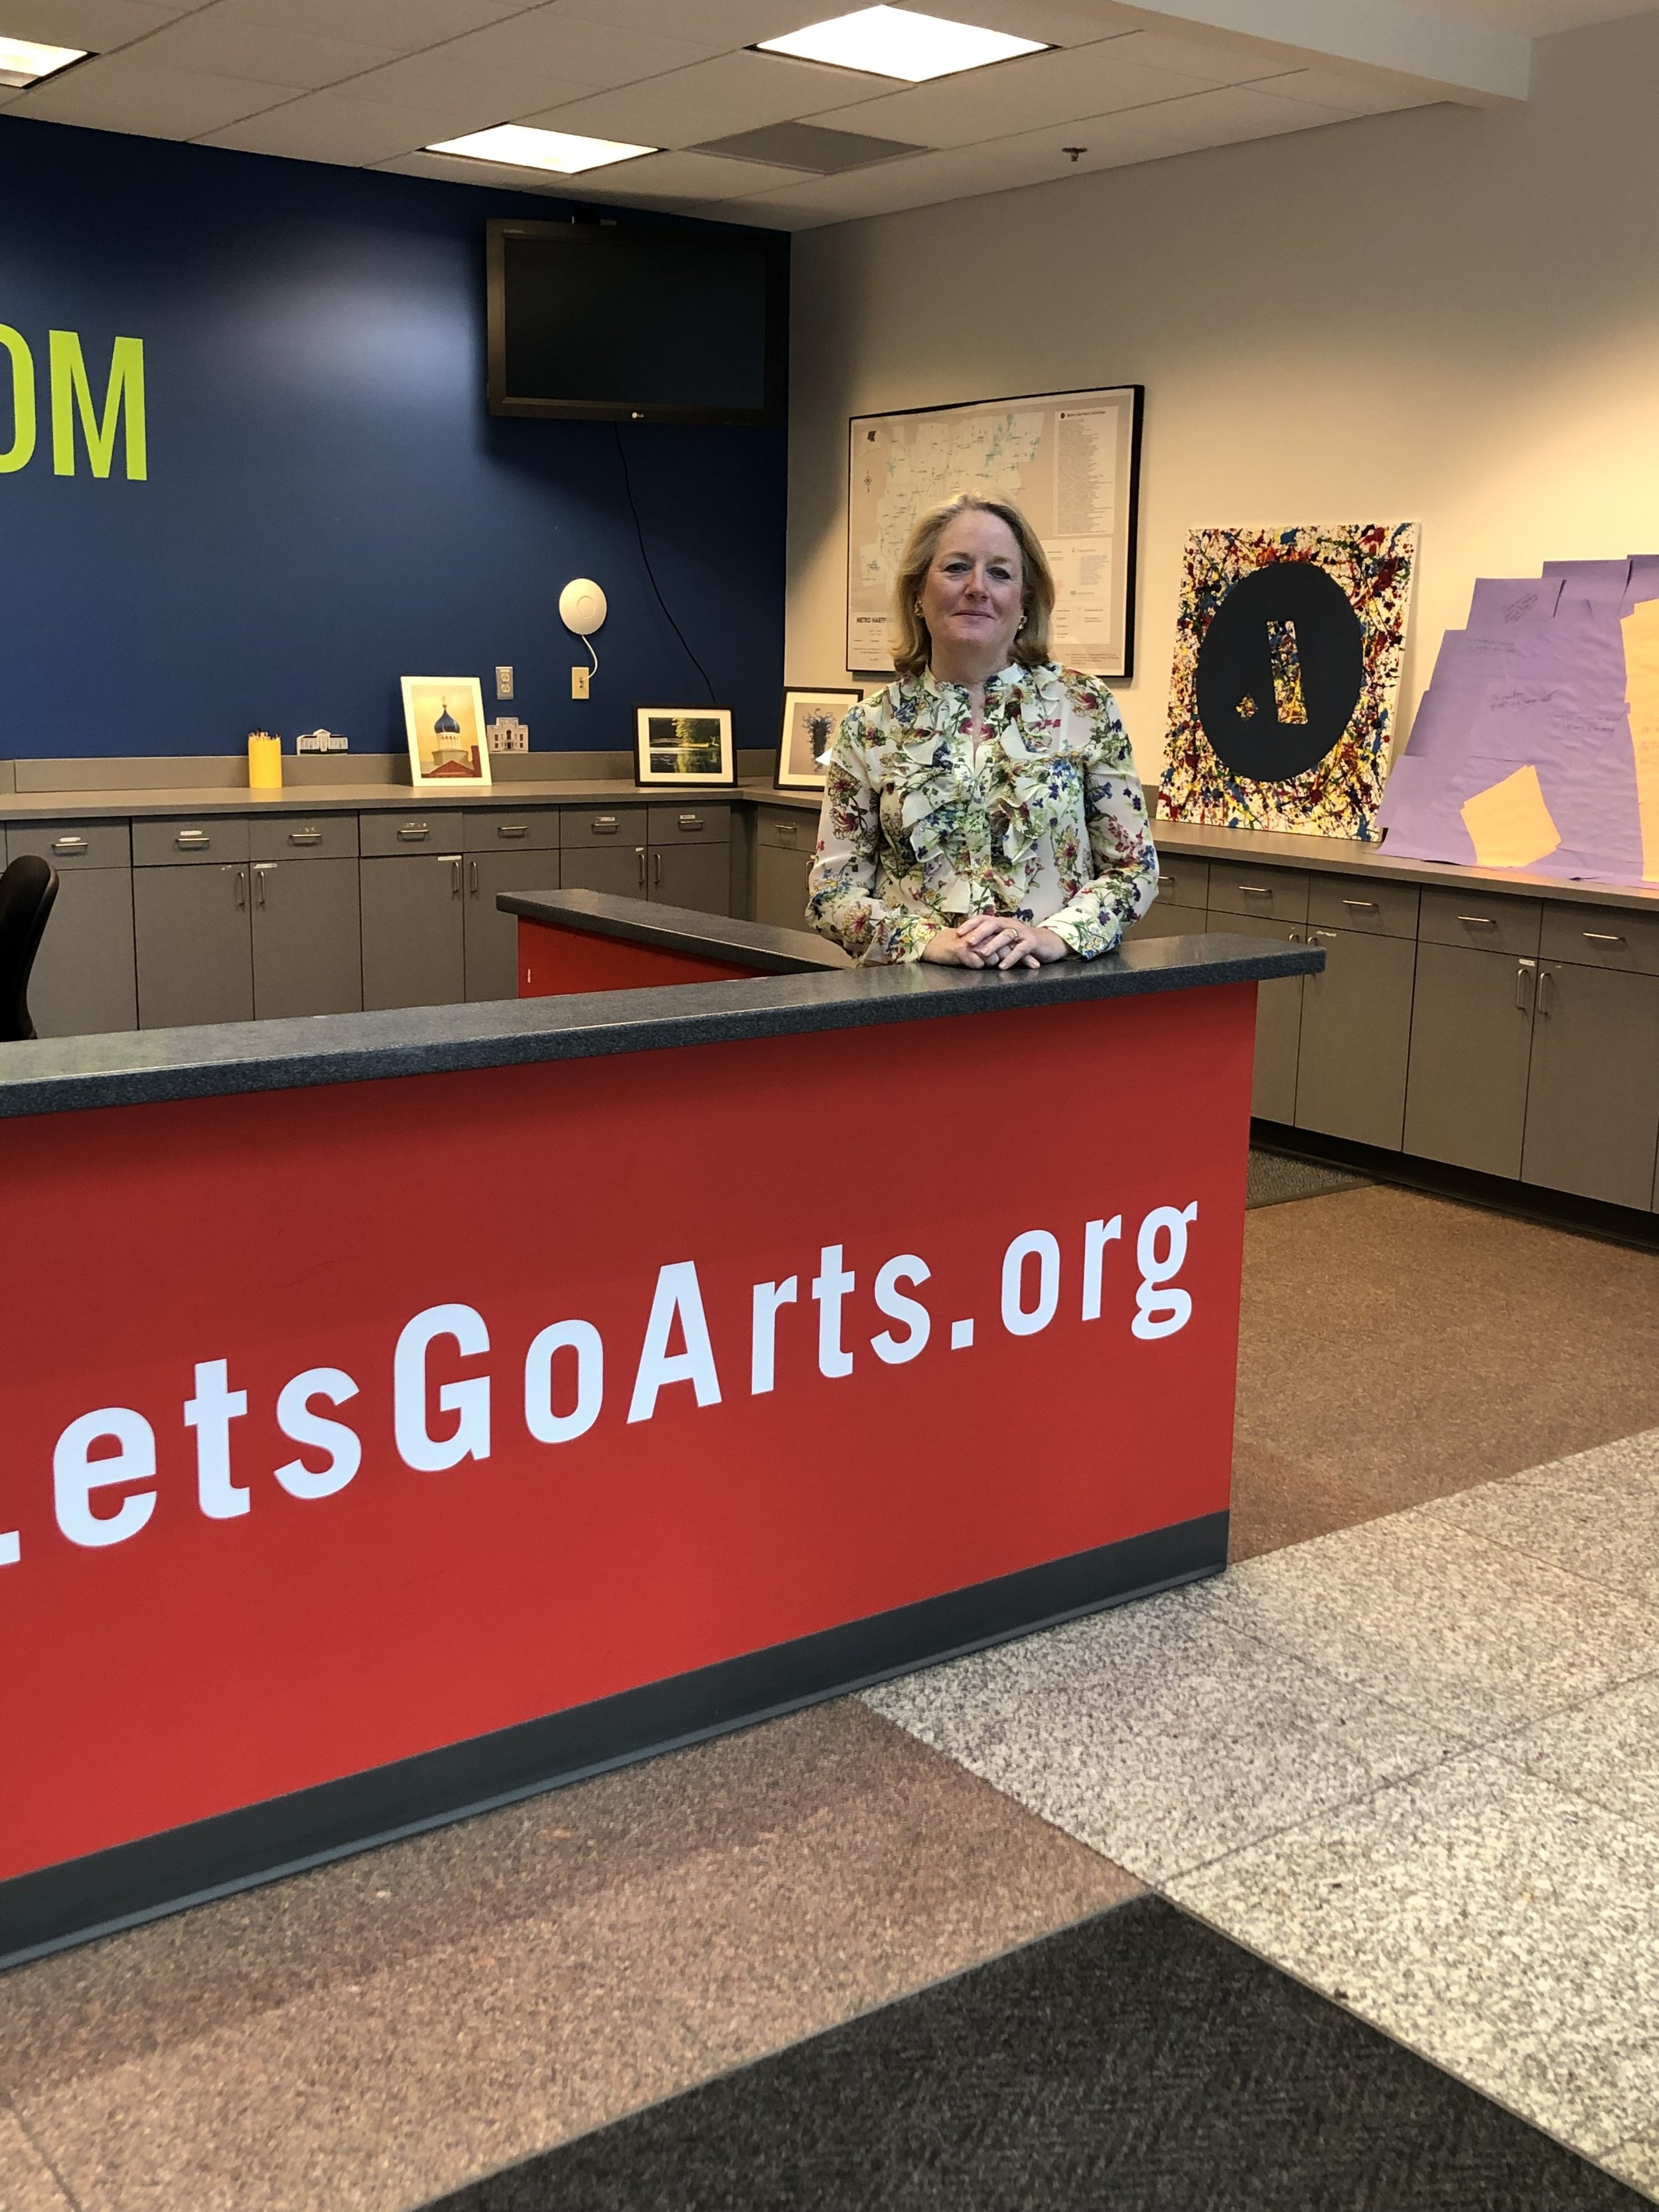 Cathy Malloy, CEO of the Greater Hartford Arts Council